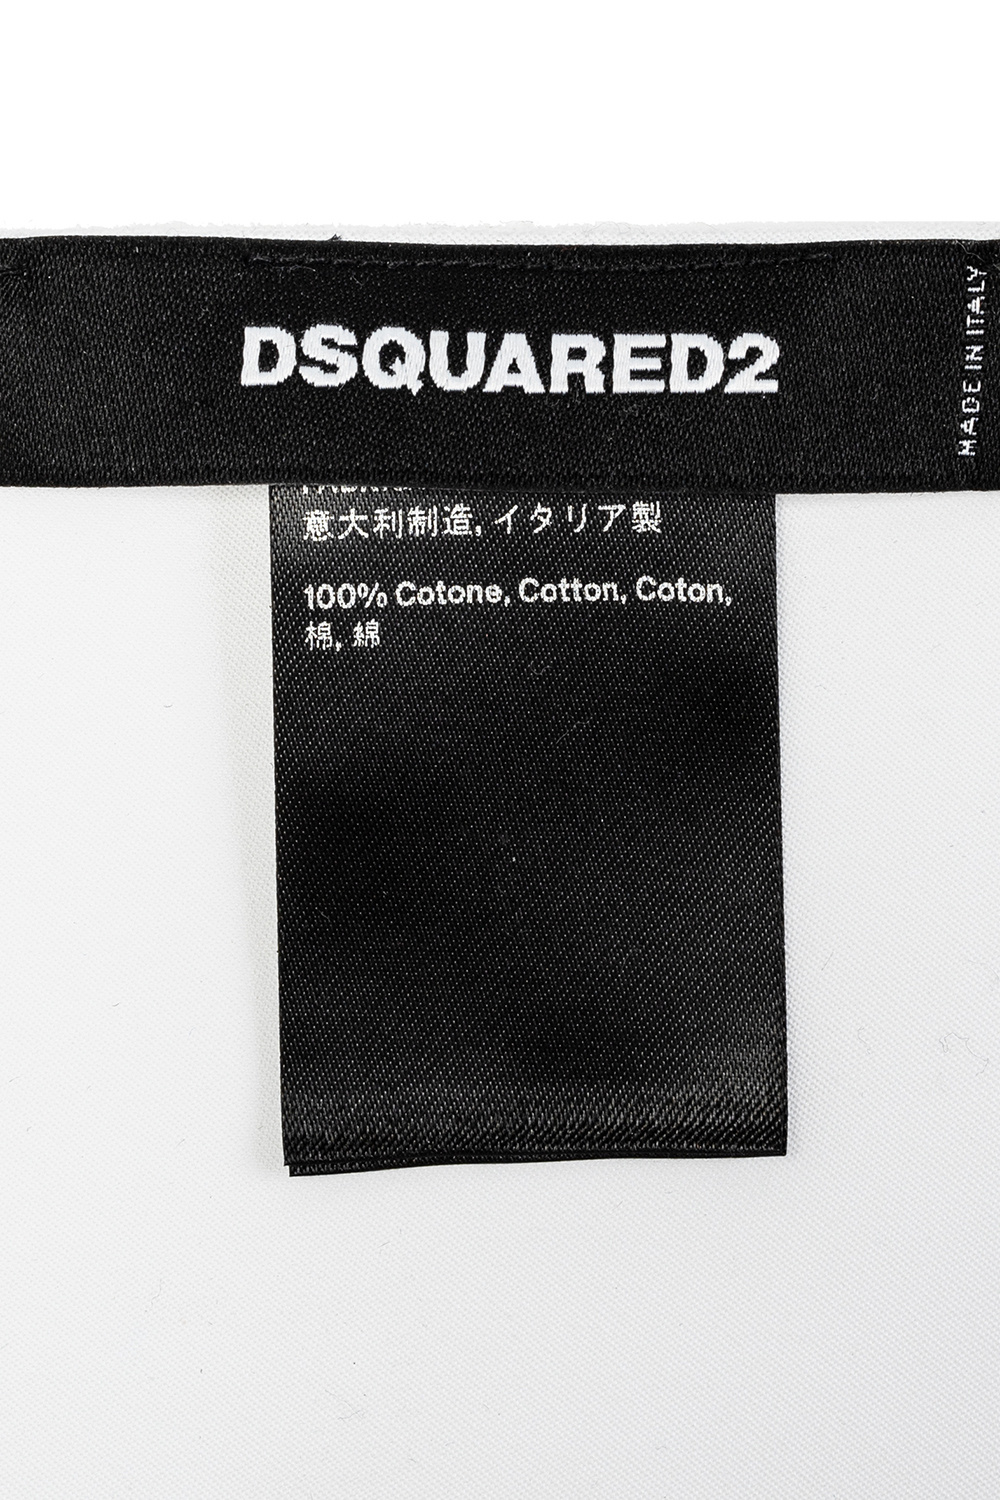 Dsquared2 Pocket square with logo